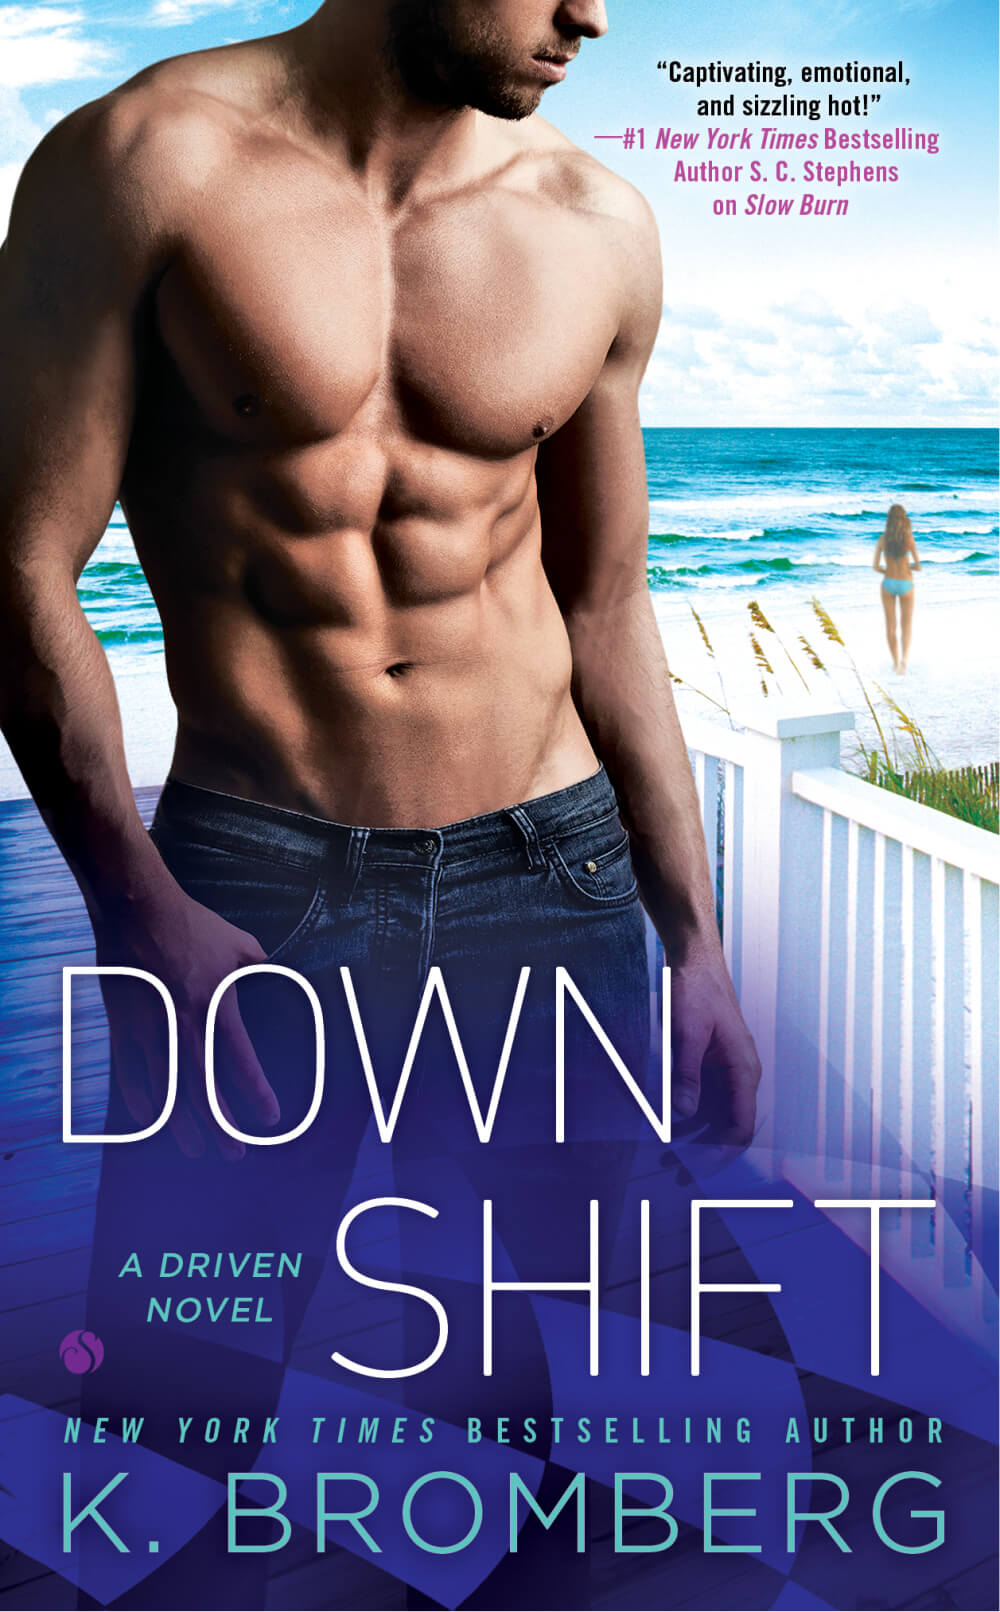 Down Shift by K. Bromberg